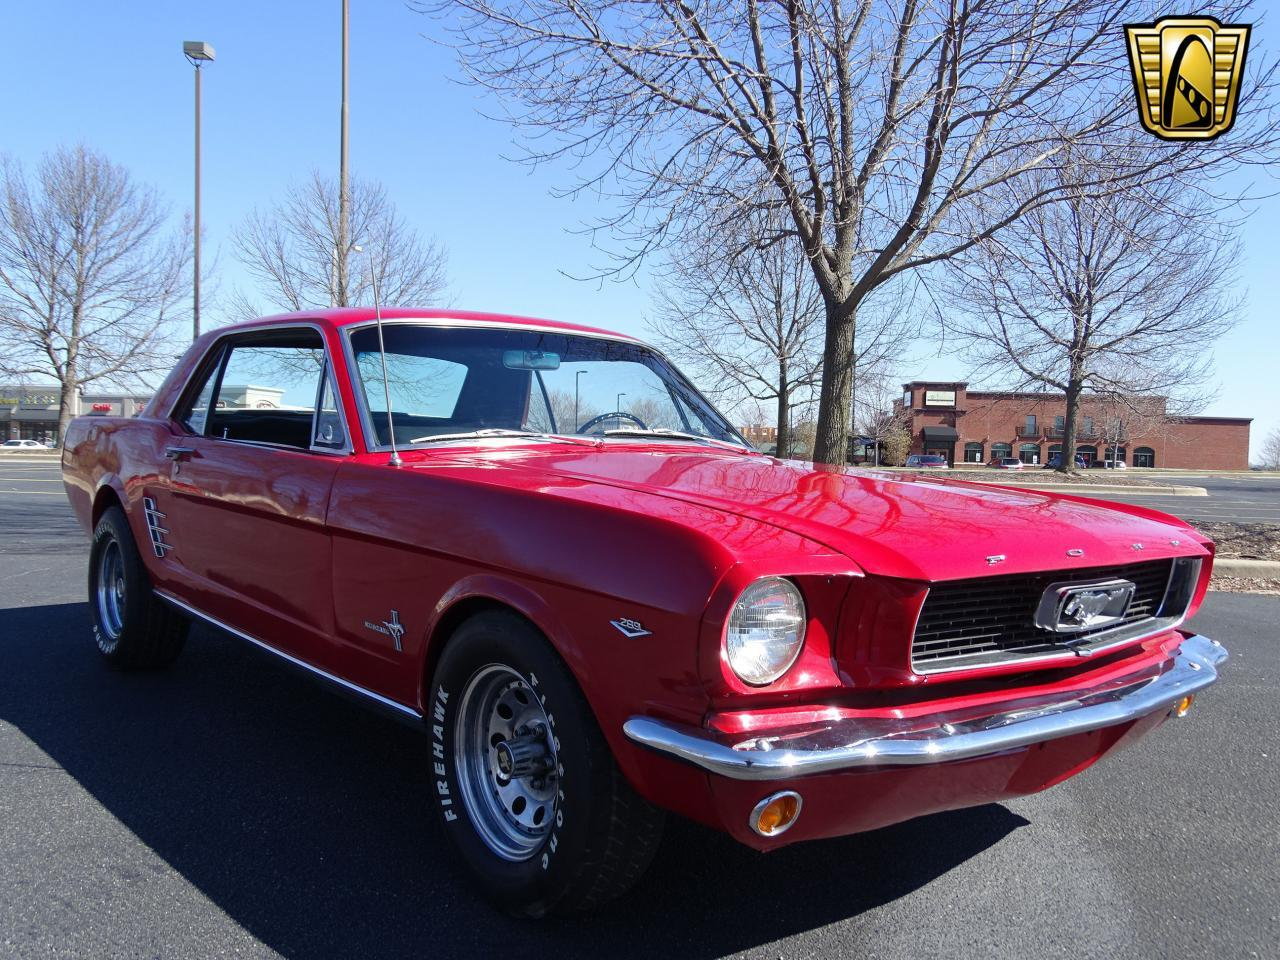 Large Picture of '66 Mustang located in O'Fallon Illinois Offered by Gateway Classic Cars - St. Louis - MZEK